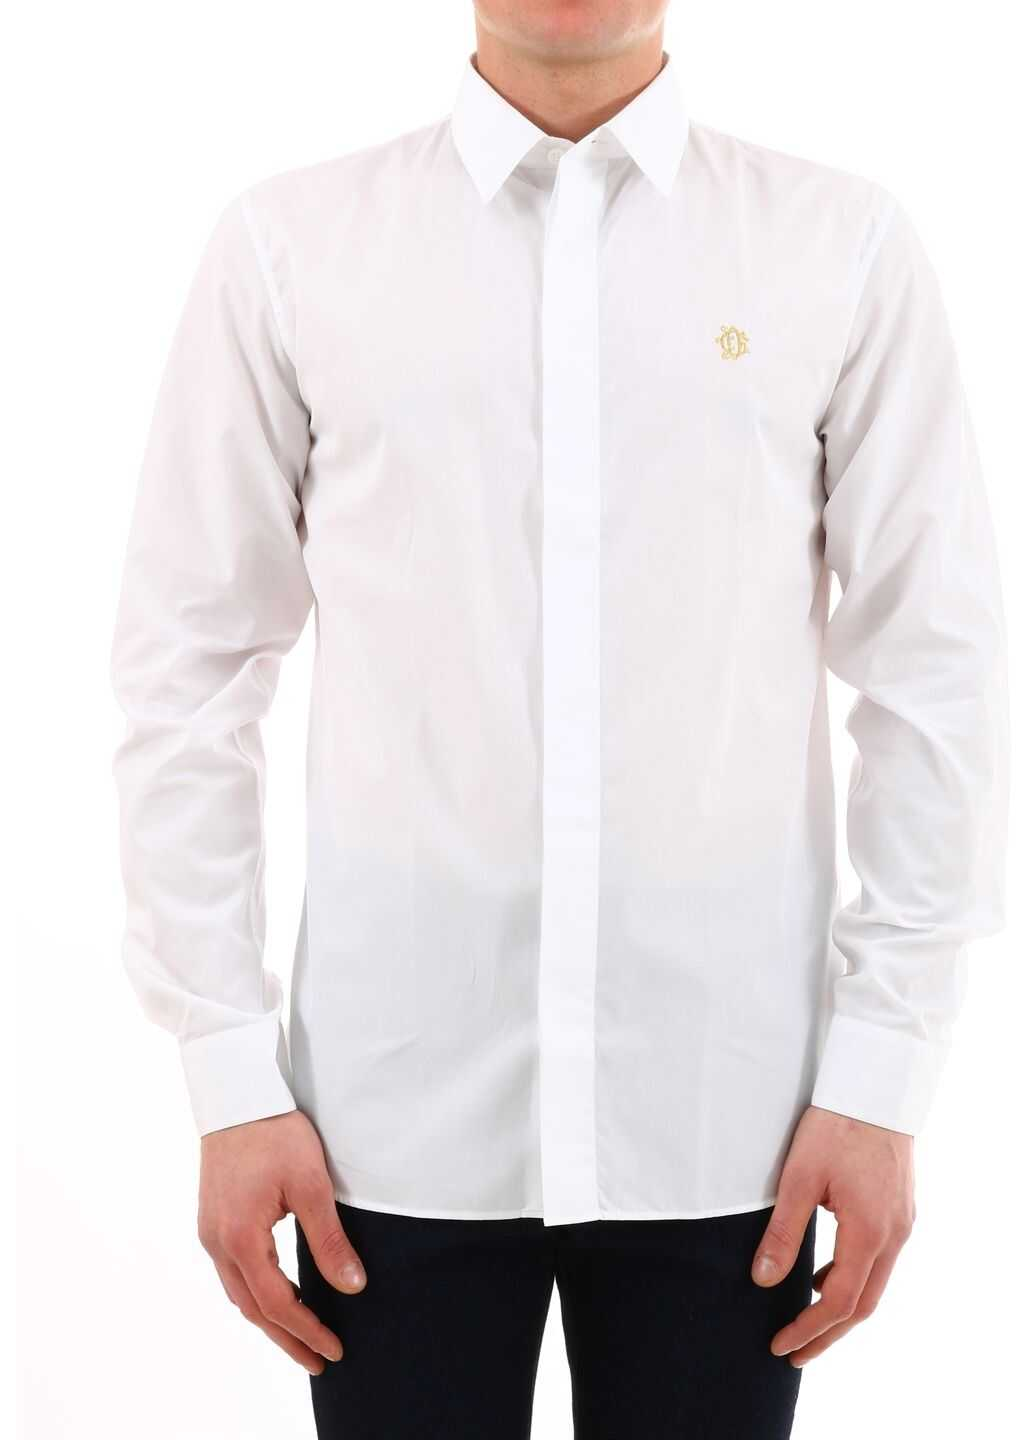 Dior Shirt Cd Gothique White